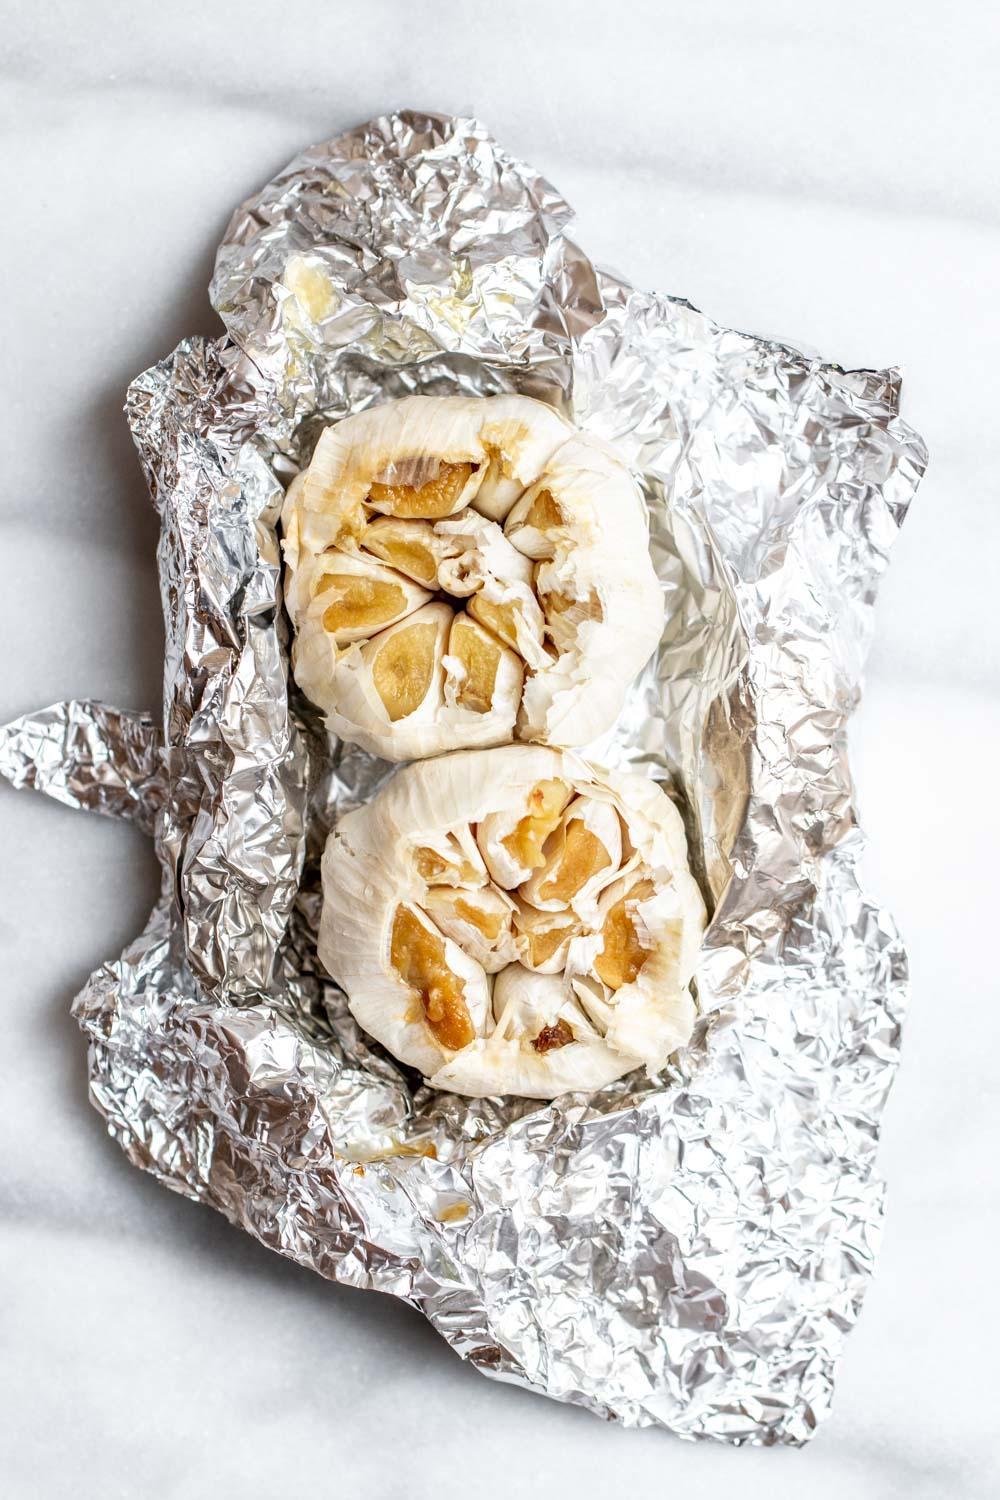 Two heads of roasted garlic wrapped in foil.